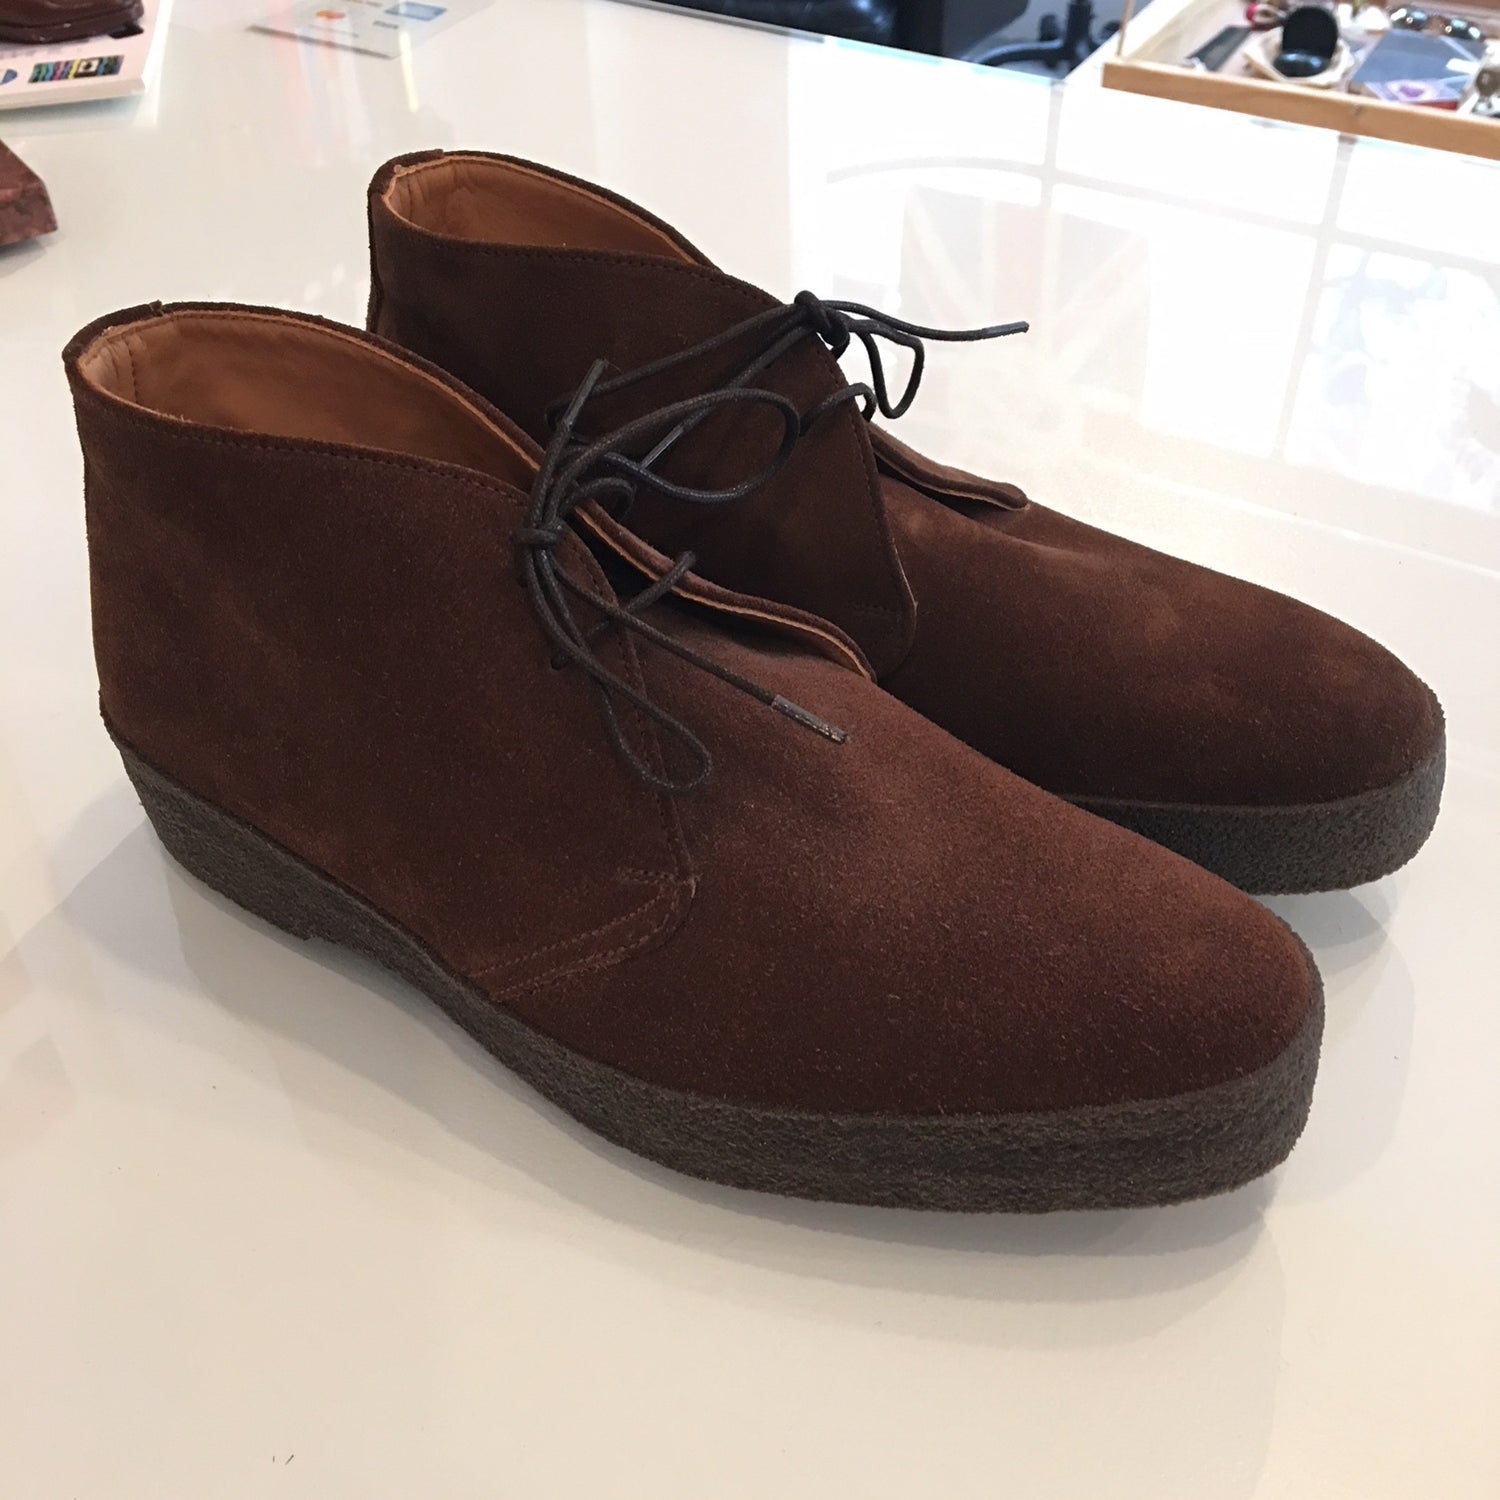 Sanders Hi Top Chukka Boot